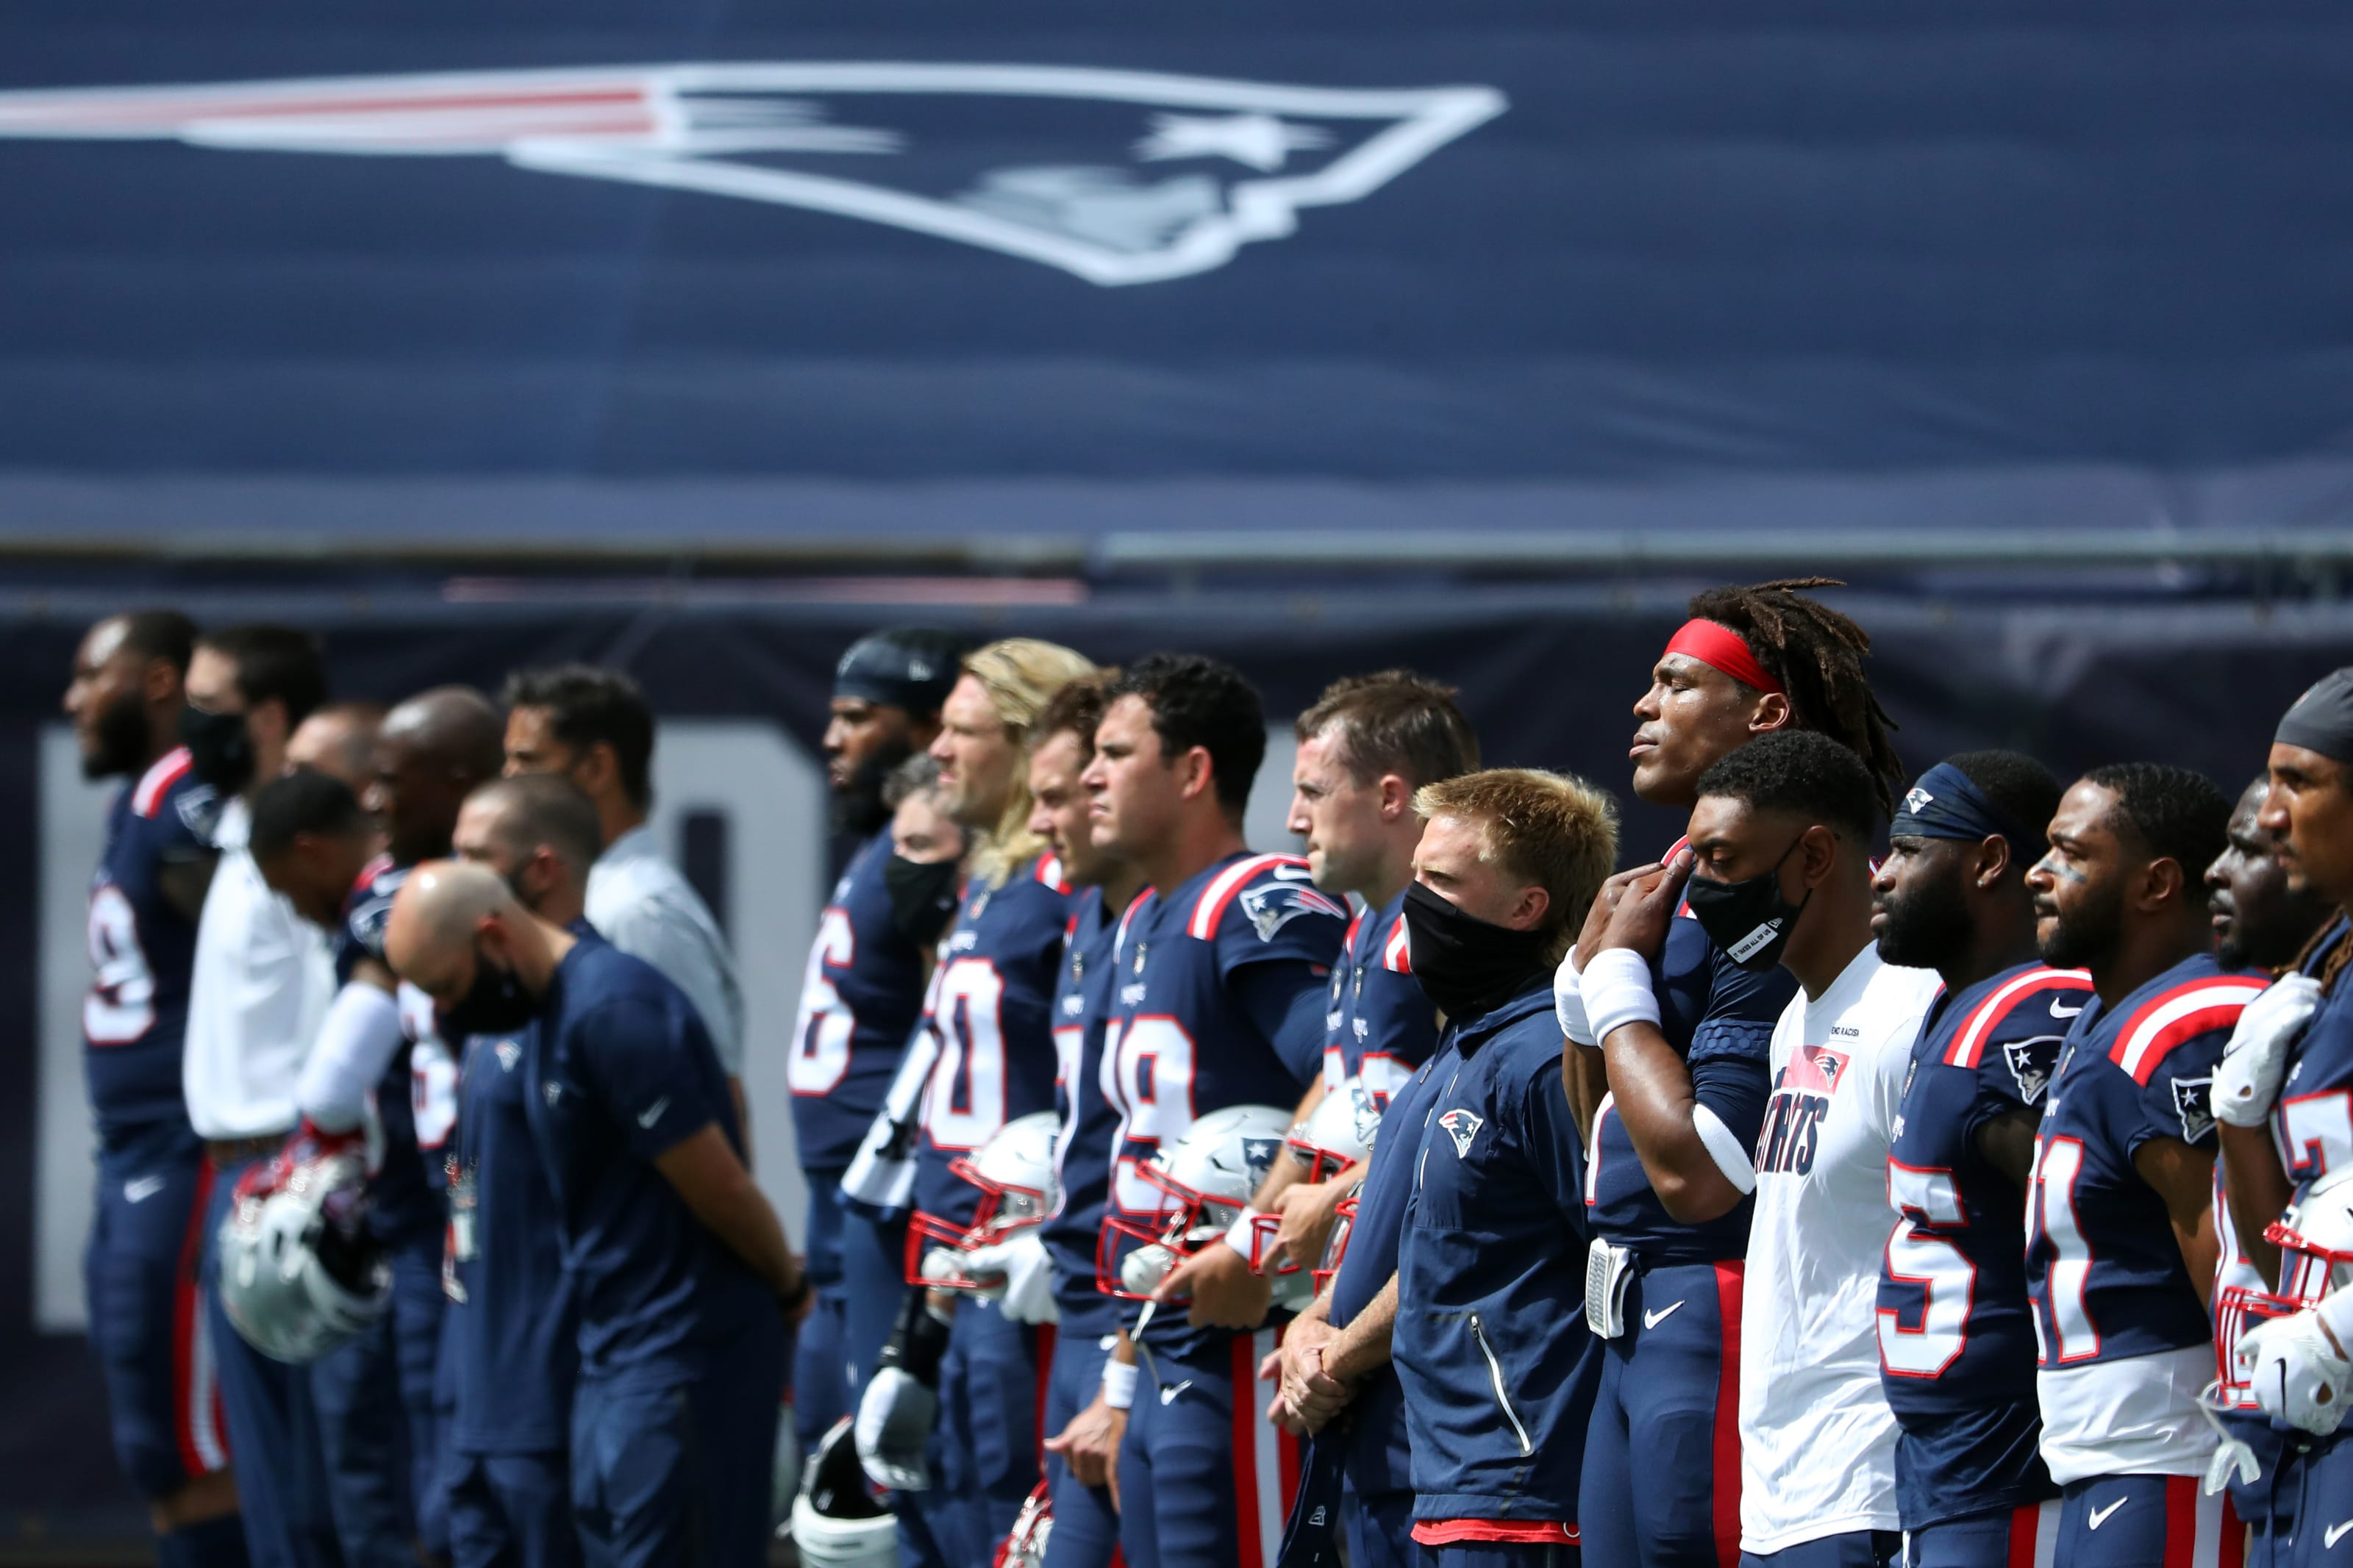 New England Patriots 3 Studs And Duds In Week 1 Vs Dolphins